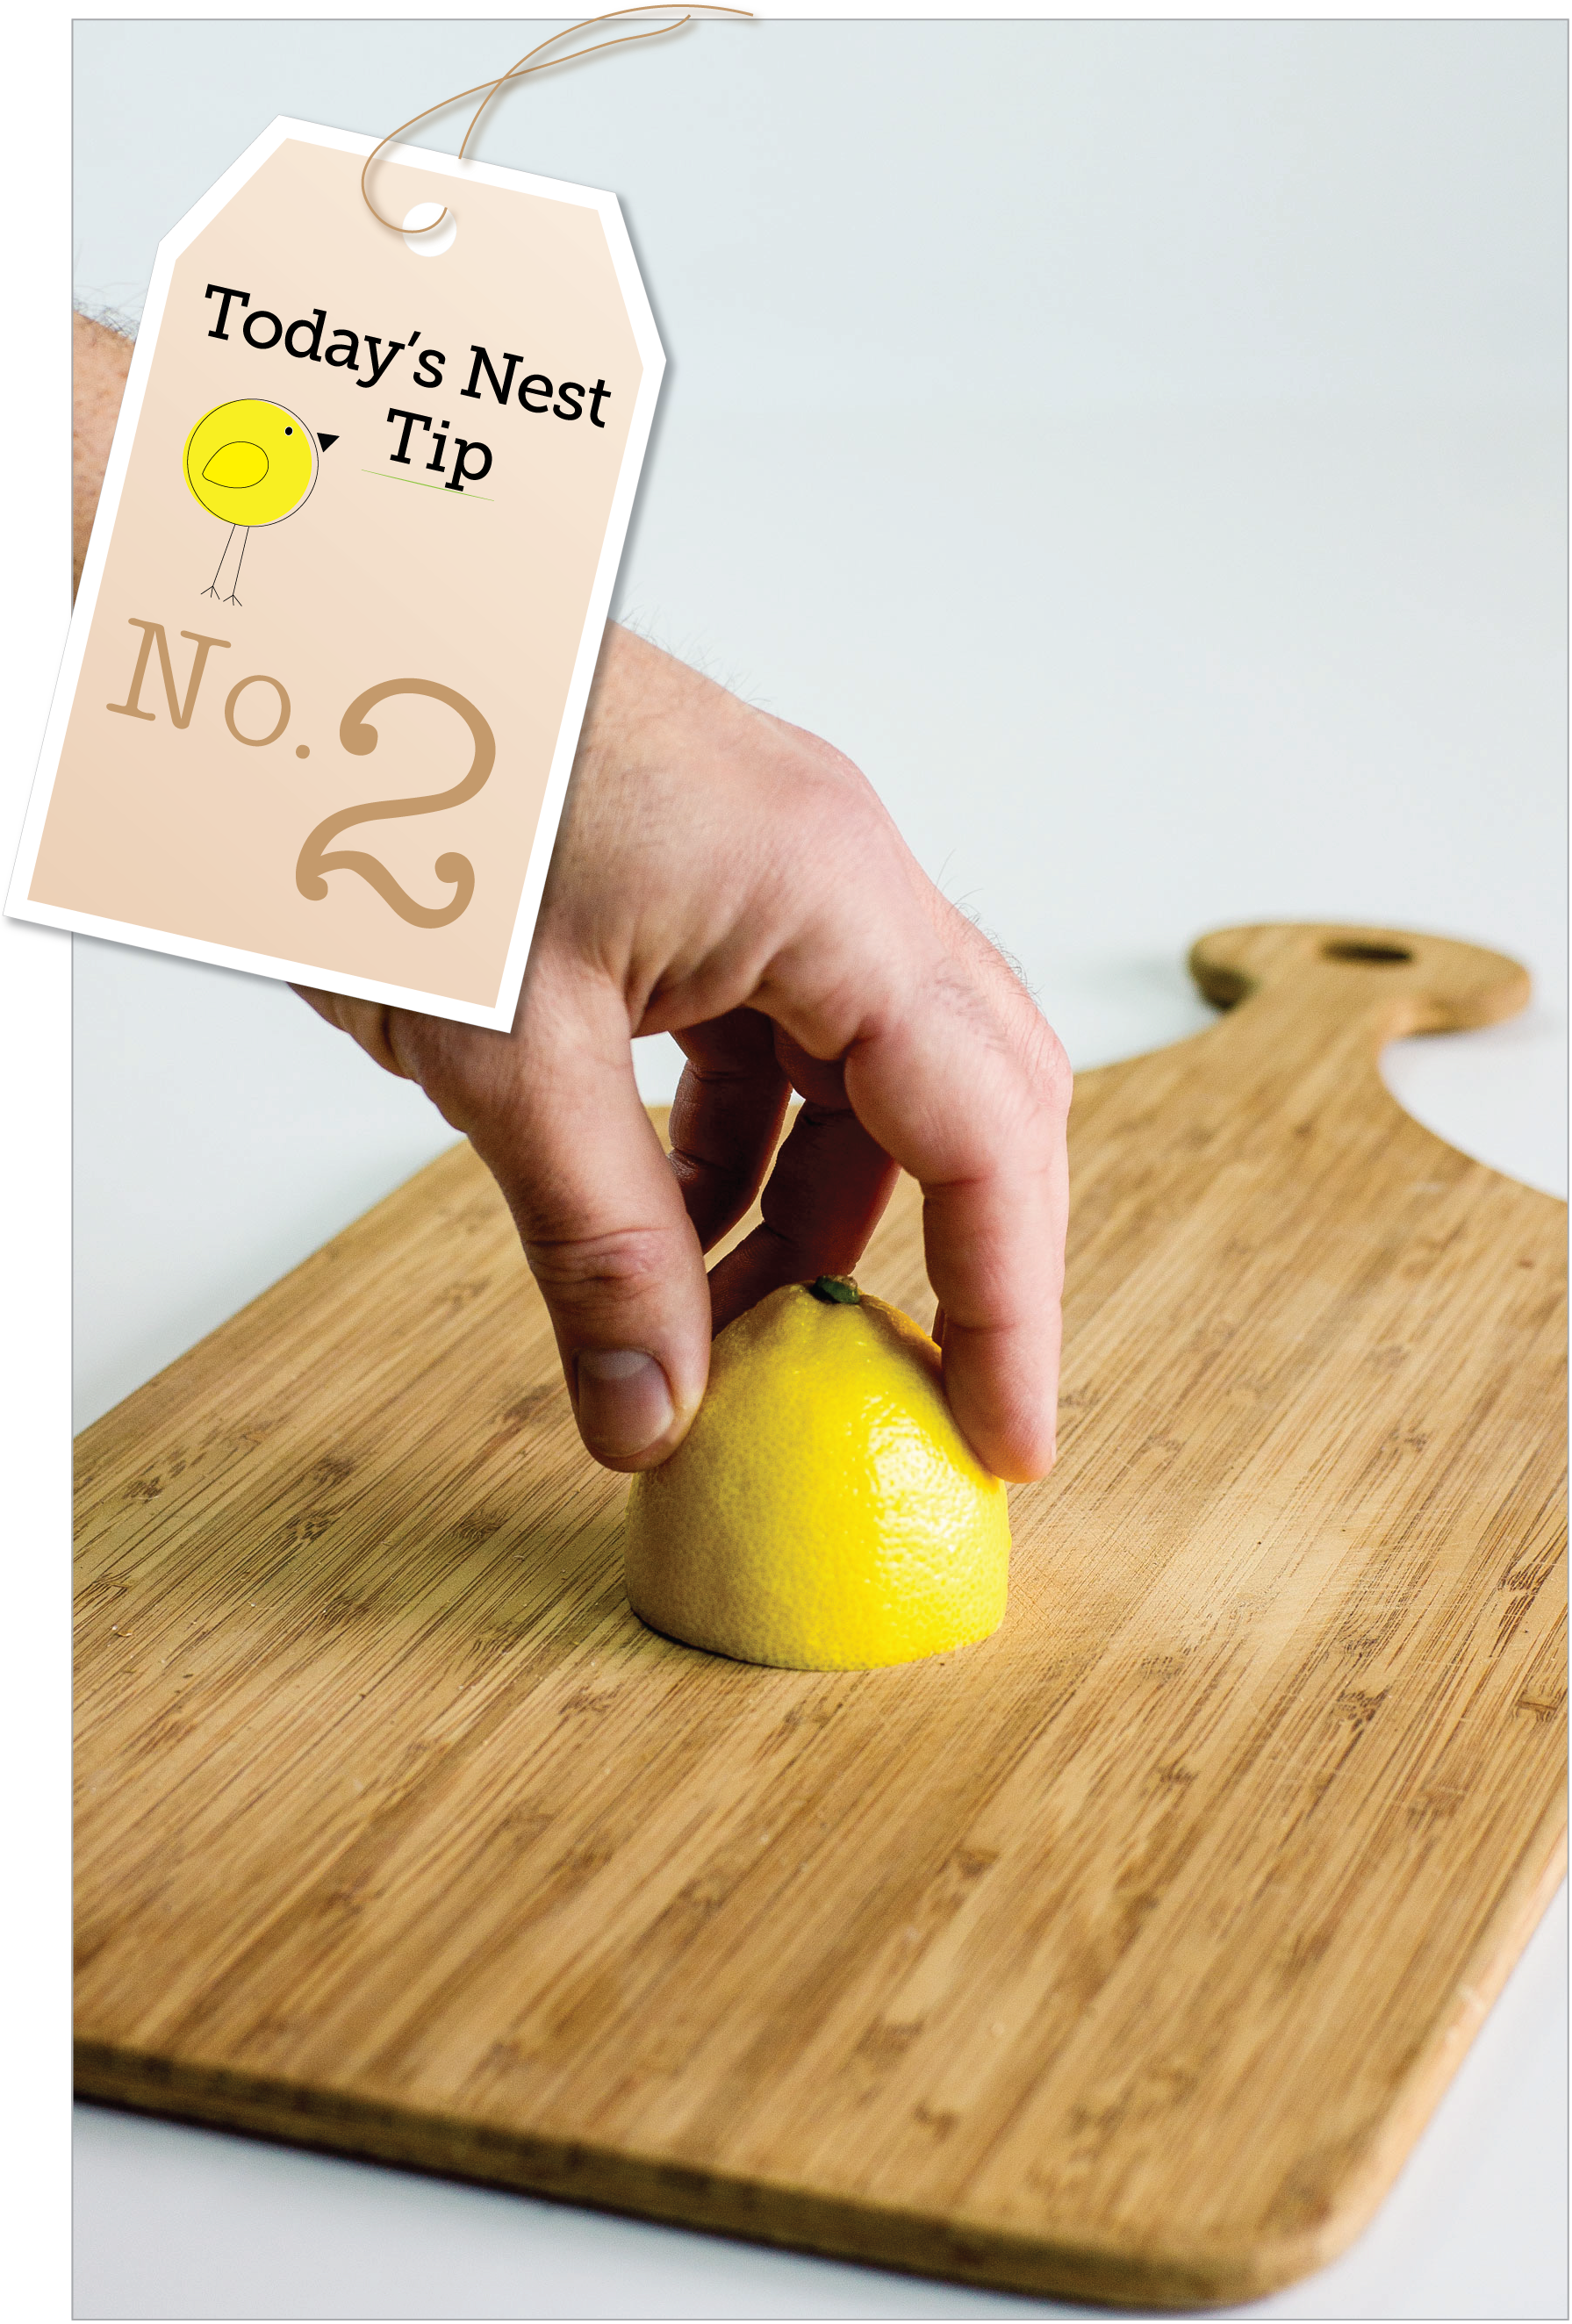 Today's Nest Kitchen Tip: Obliterate odors on your cutting board by rubbing it with lemon.